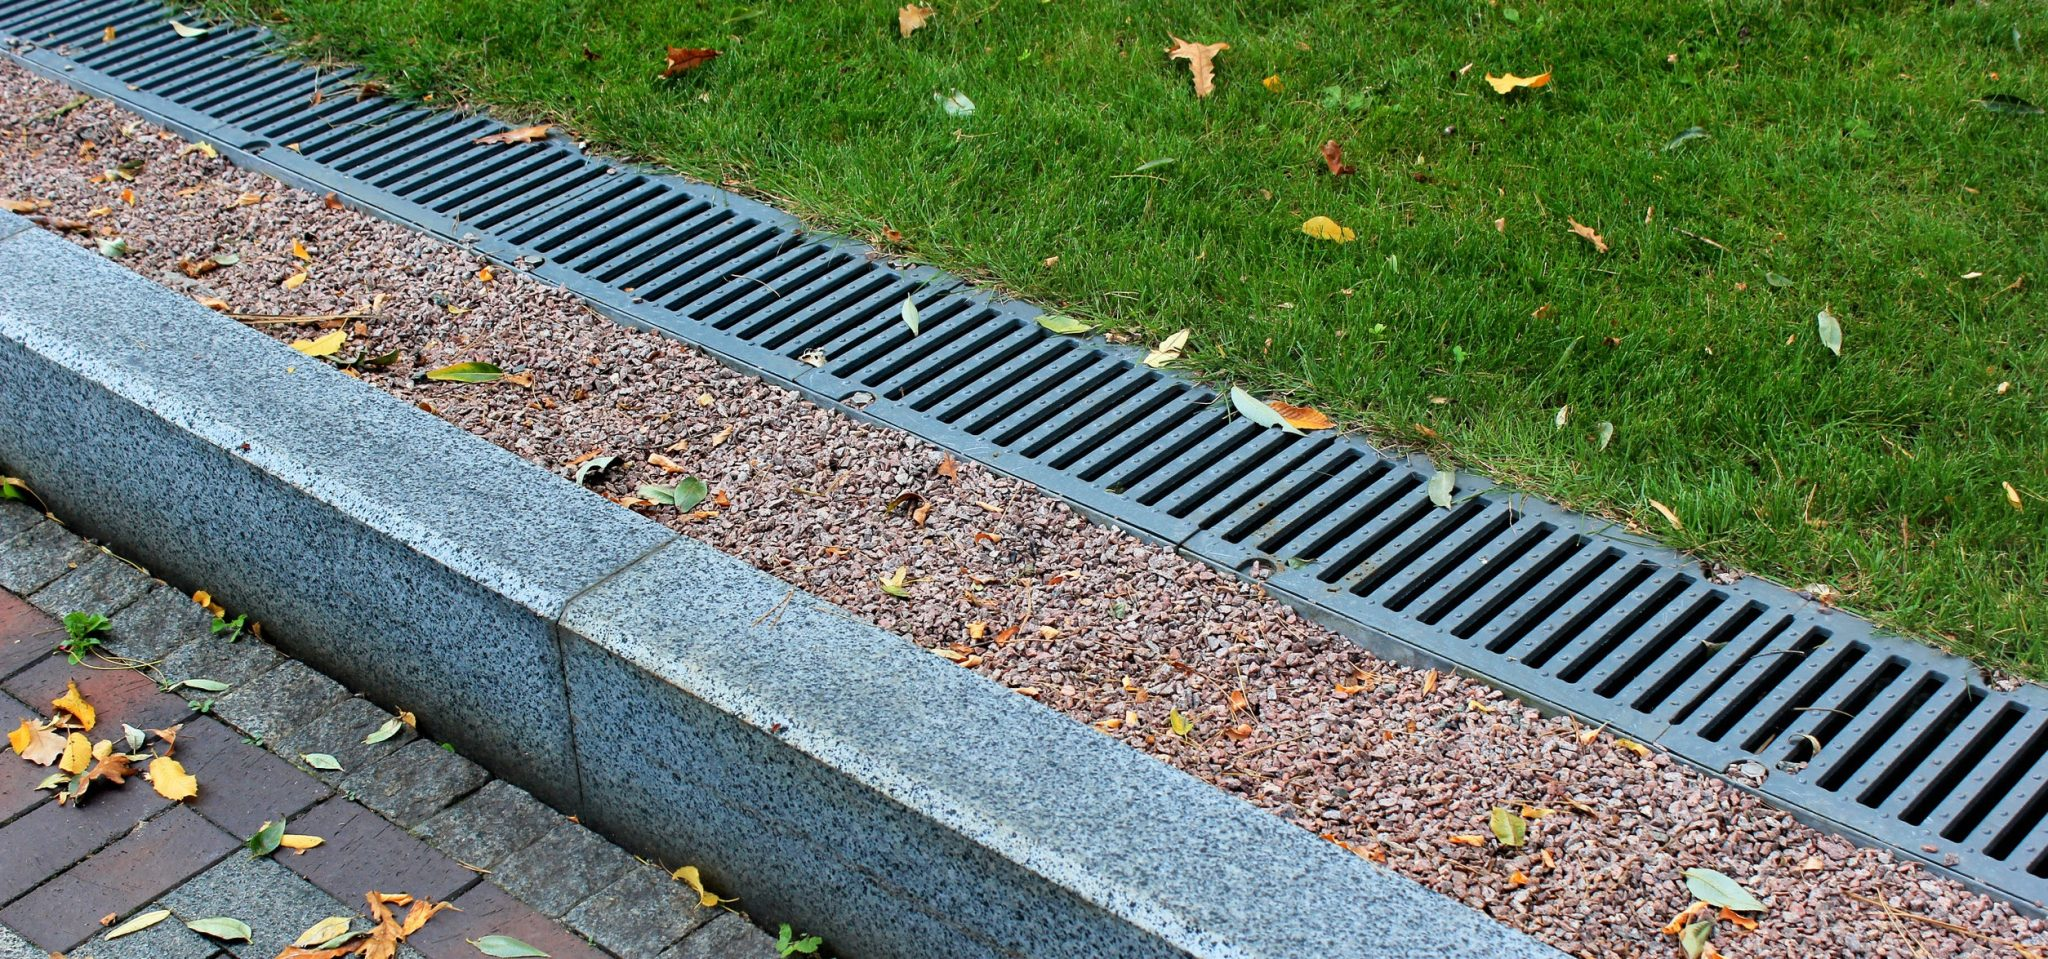 Rainwater drainage system in a park